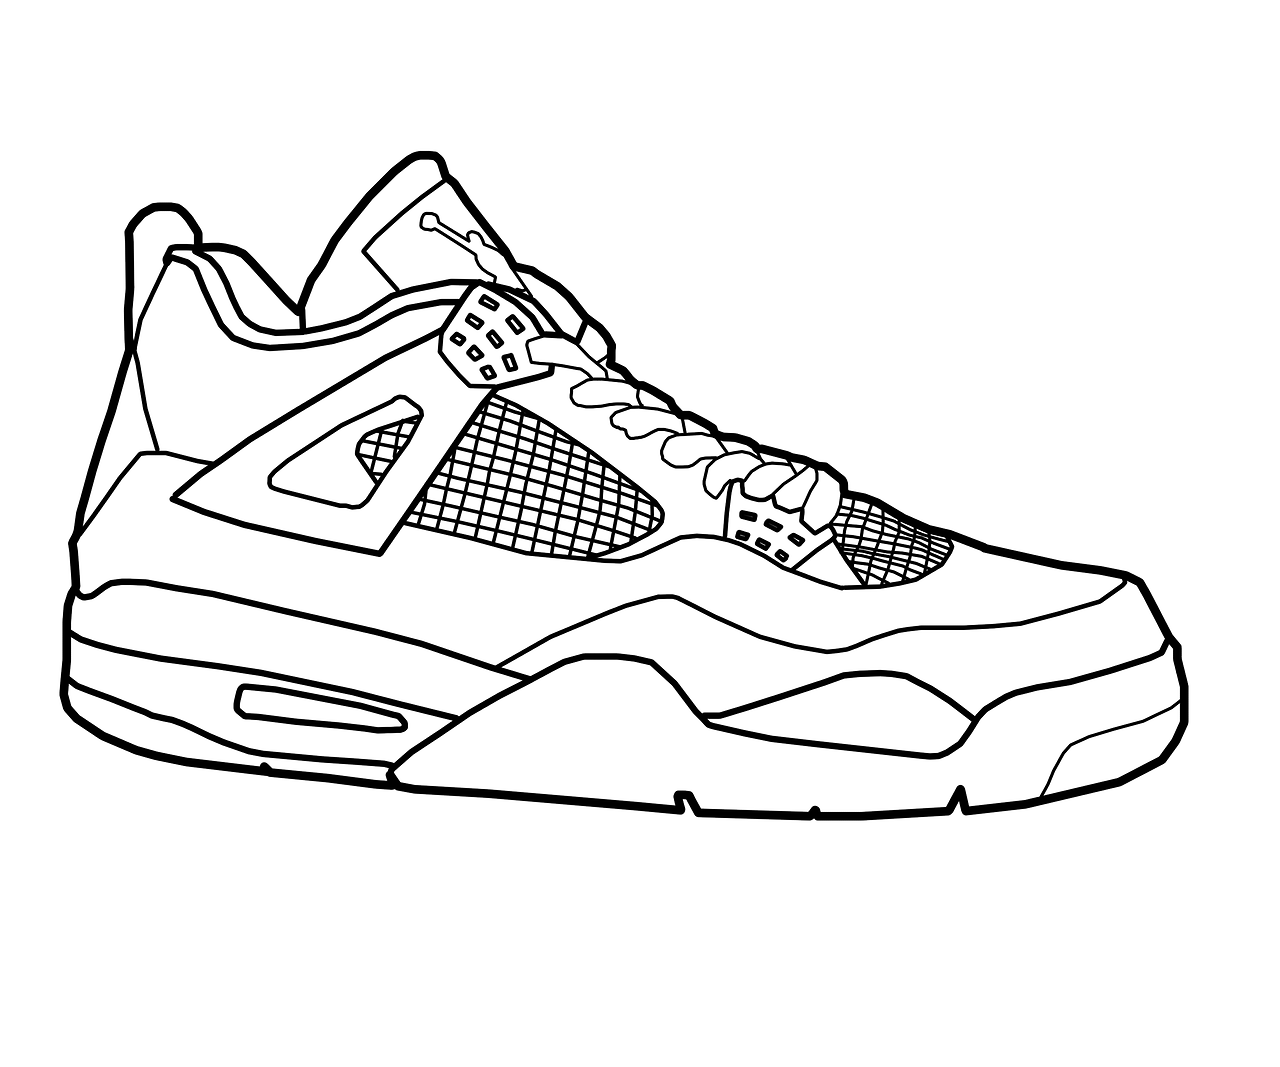 15 Pics of Drawing Jordans Shoes Coloring Pages - Jordan Retro 5 ...